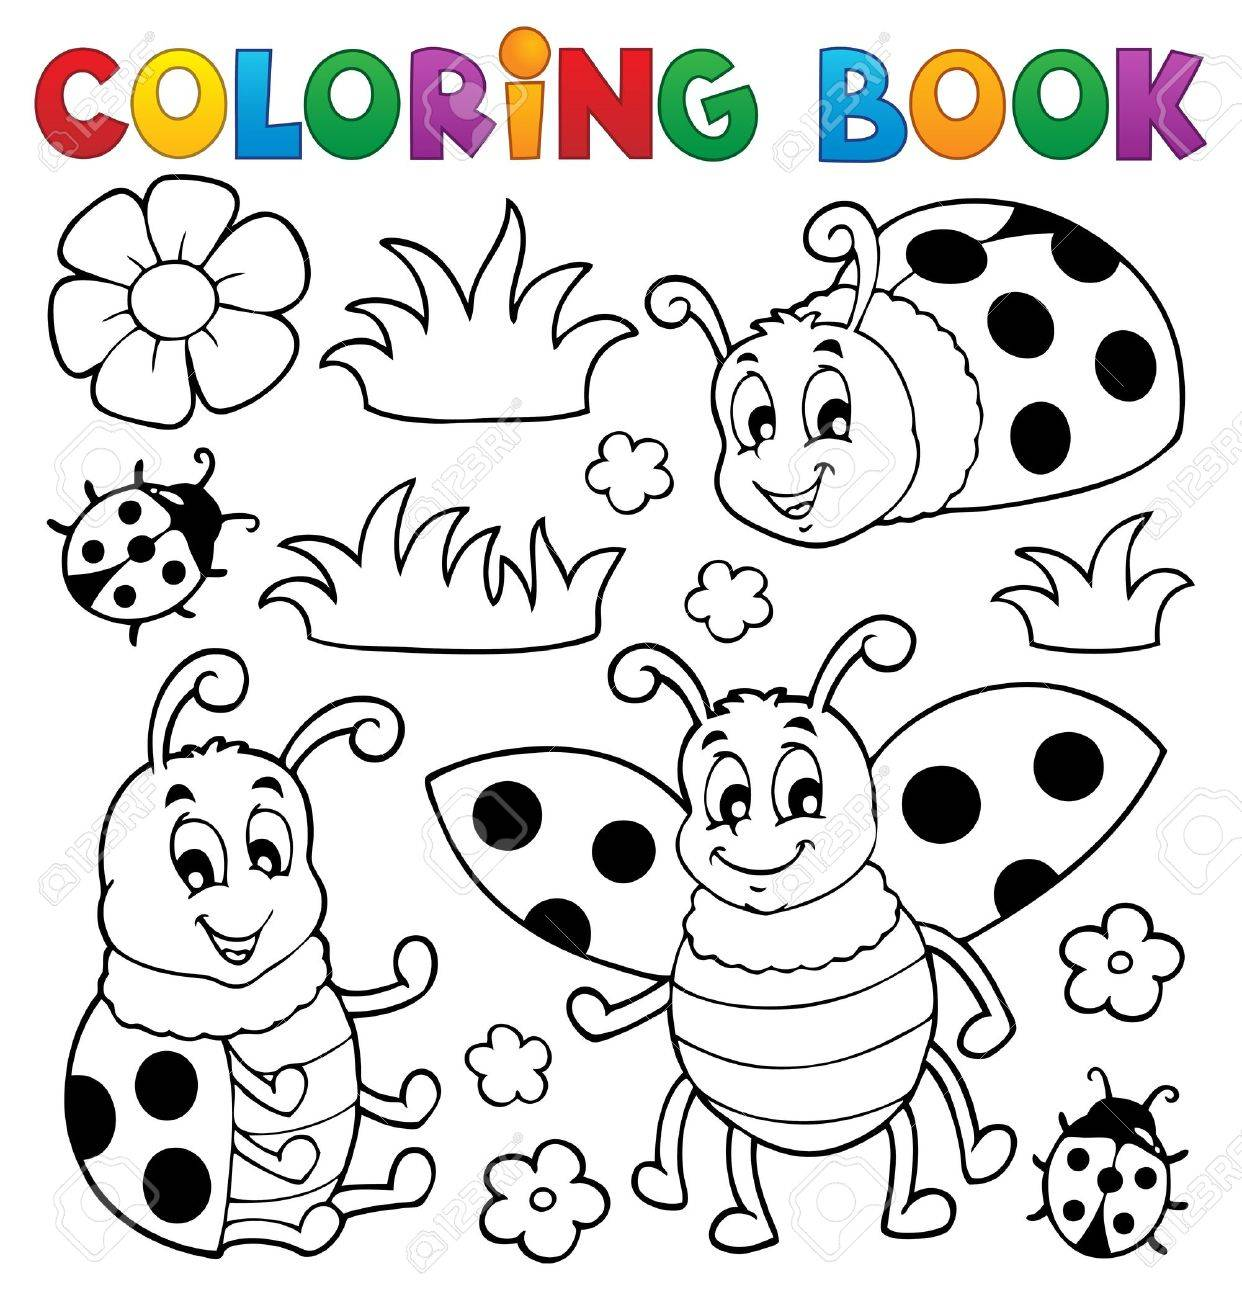 beautiful ladybug coloring book images printable coloring pages